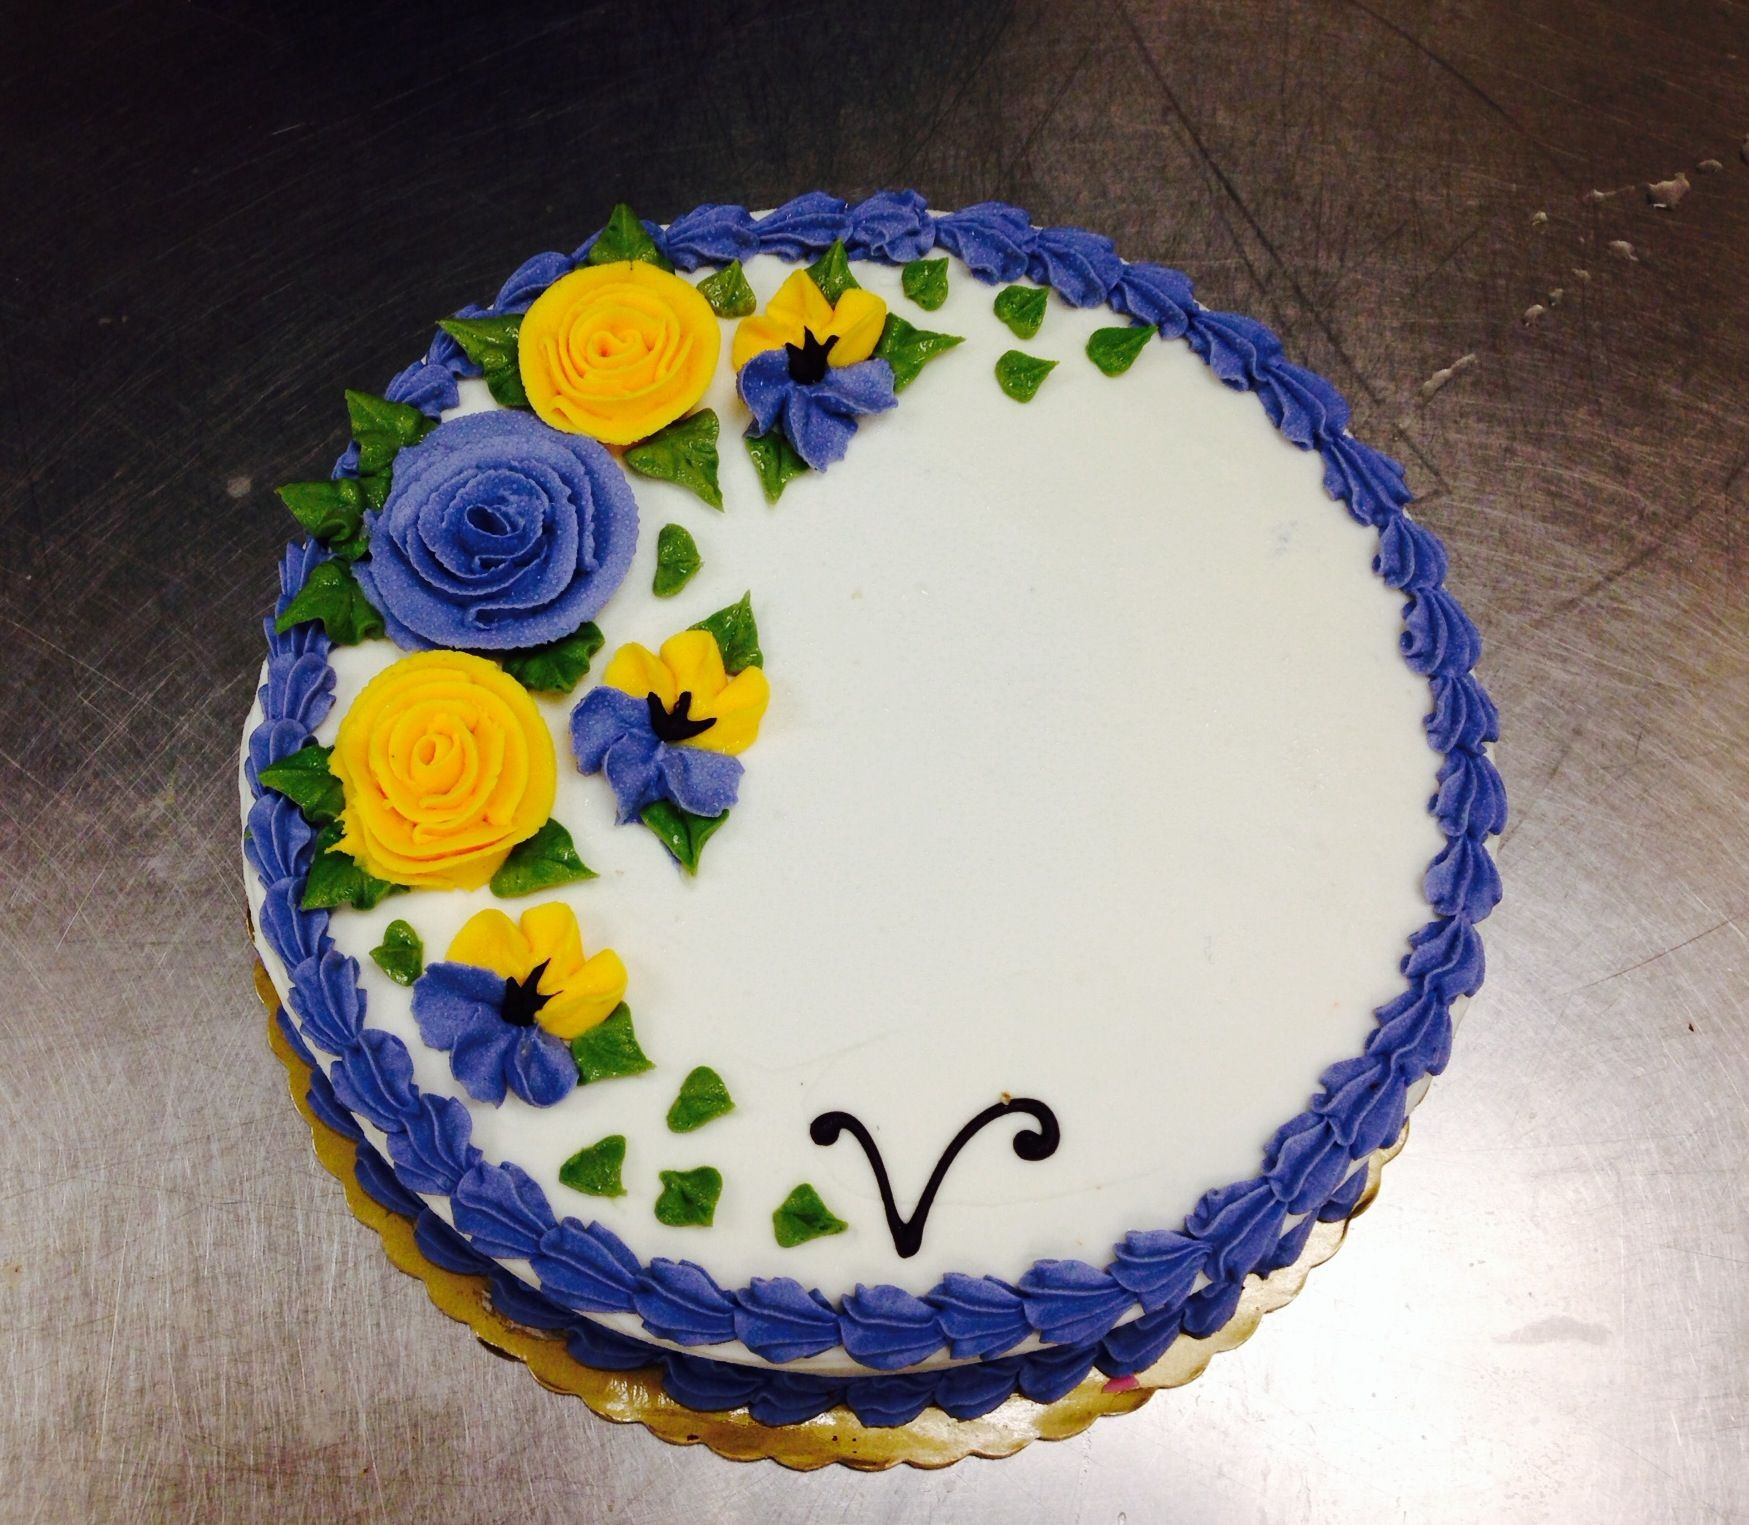 Vegan Vanilla Cake with flowers     made by Maggie Mae